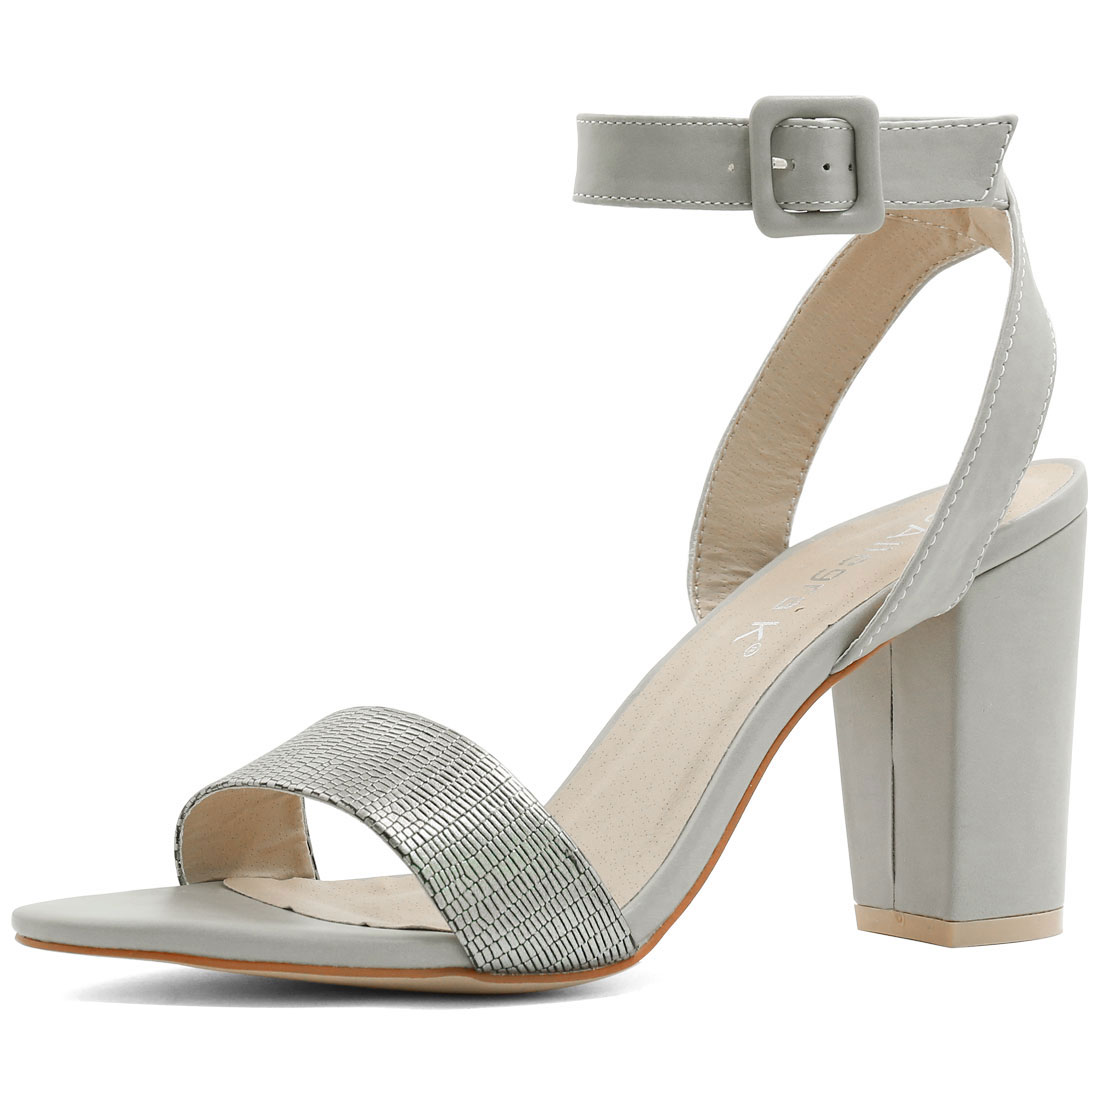 Woman Textured Vamp Chunky Heel Ankle Strap Sandals Silver US 8.5